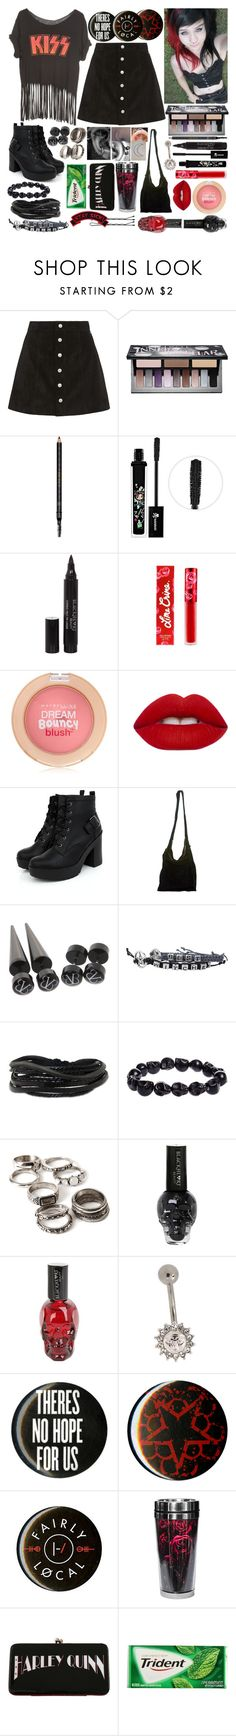 """""""'Cause this is a wasteland, my only retreat, with heaven above you, there's hell over me"""" by thelyricsmatter ❤ liked on Polyvore featuring AG Adriano Goldschmied, Kat Von D, Gucci, Tokidoki, Lime Crime, Maybelline, Acne Studios, Gioelli Designs, Forever 21 and Carolina Glamour Collection"""